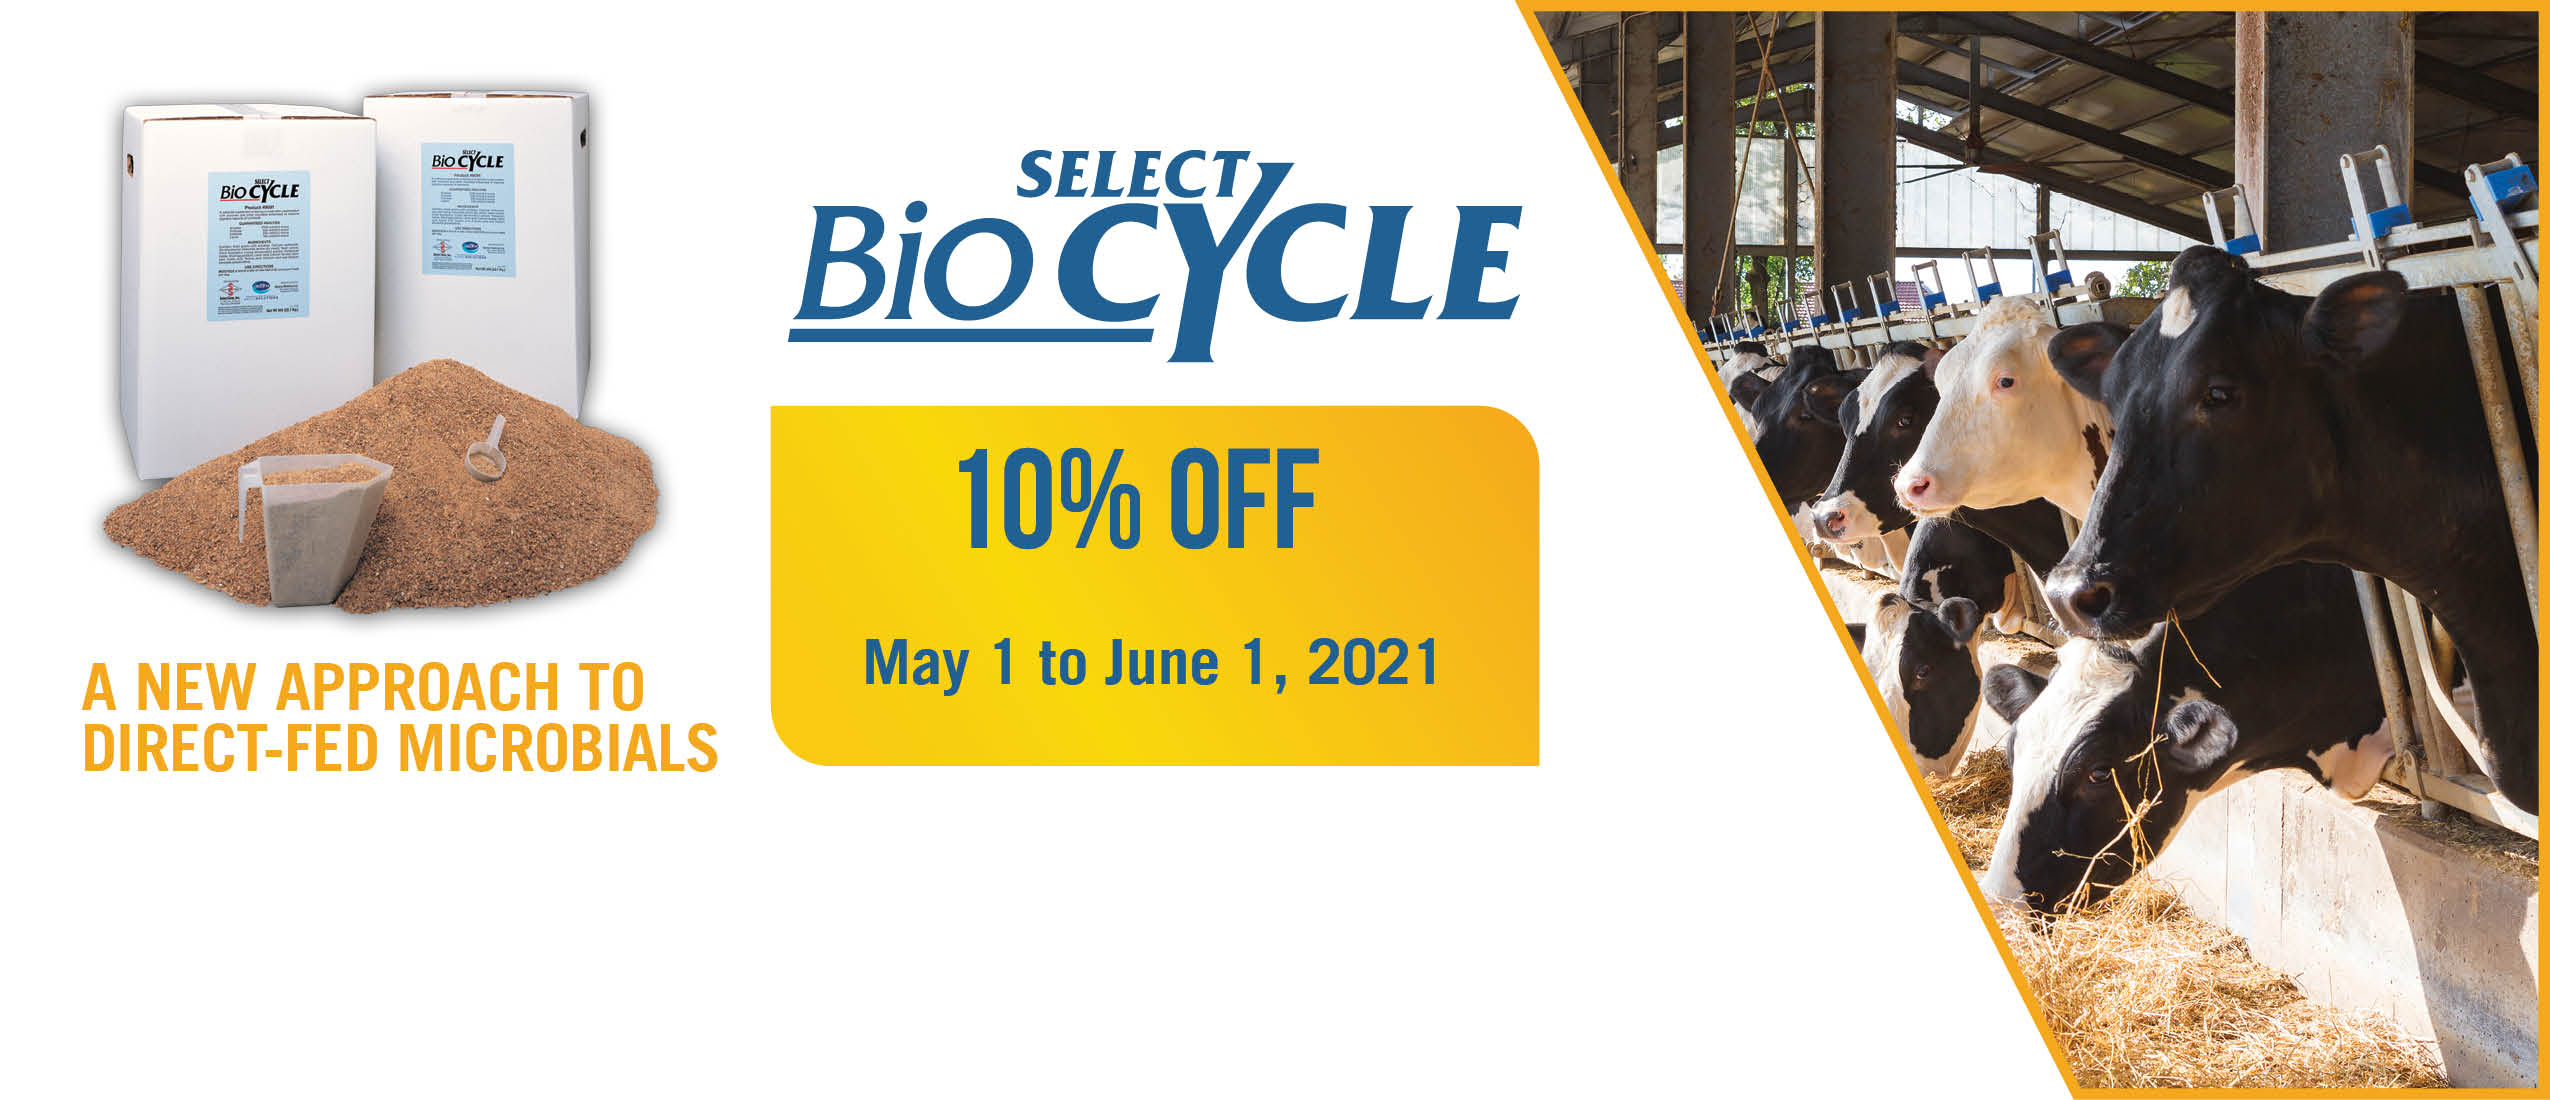 Select BioCycle™ On Special!